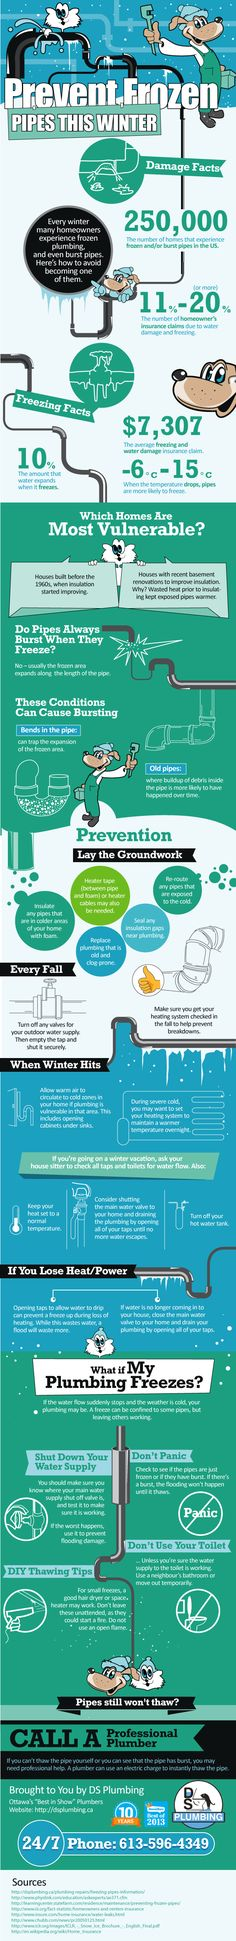 """Good tips to prevent financial and housing hardships! My grandma always said """"An ounce of prevention is worth a pound of cure."""" Prevent Frozen Pipes This Winter from Bergen, Dubai, Frozen Pipes, Mobile Home Living, Winter Hacks, Remodeling Mobile Homes, Cleaning Checklist, Cleaning Tips, Home Inspection"""